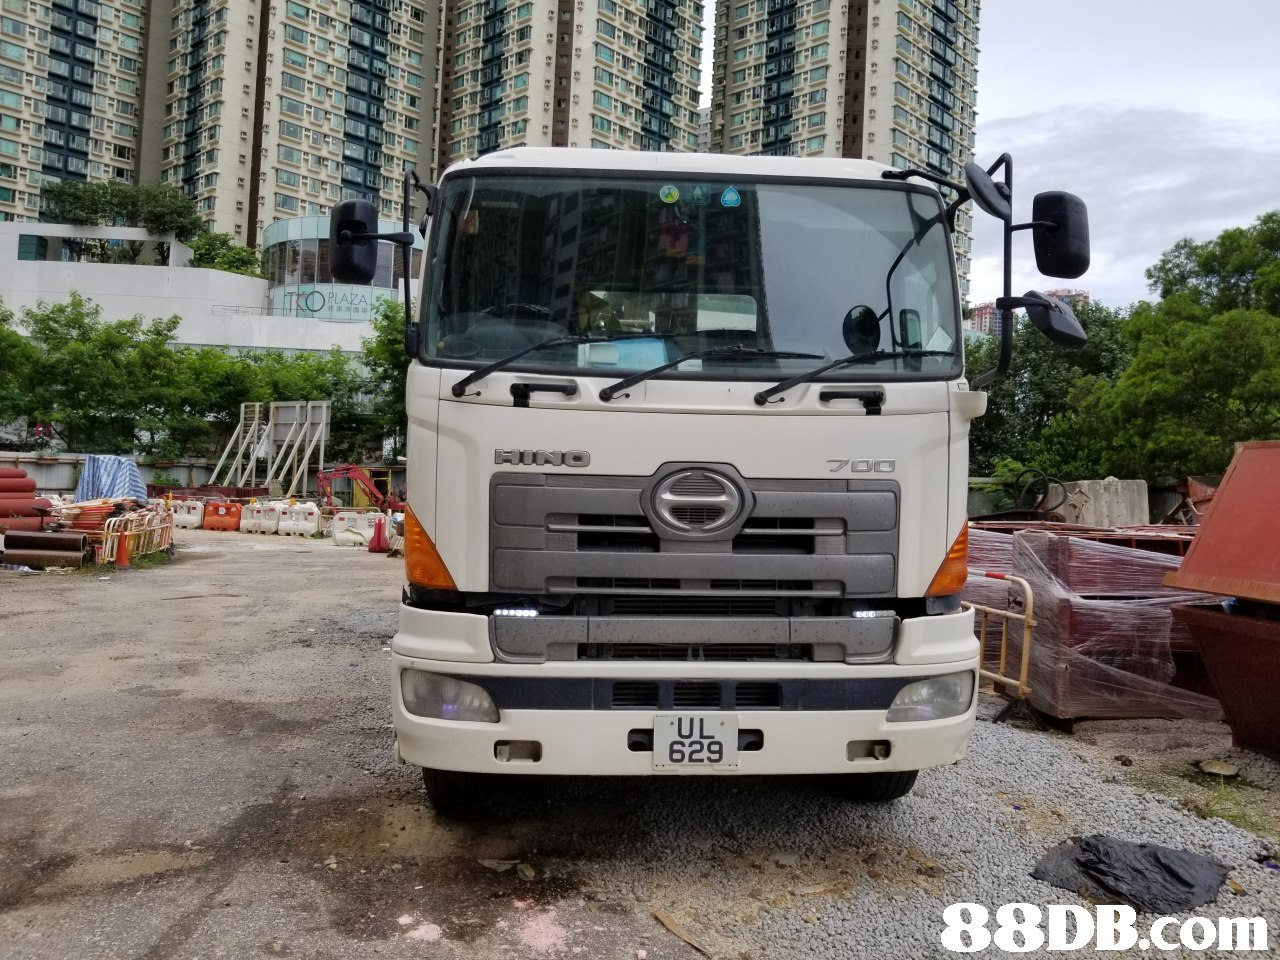 rPLAZA HINO 7D0 UL 629   Land vehicle,Vehicle,Transport,Commercial vehicle,Truck